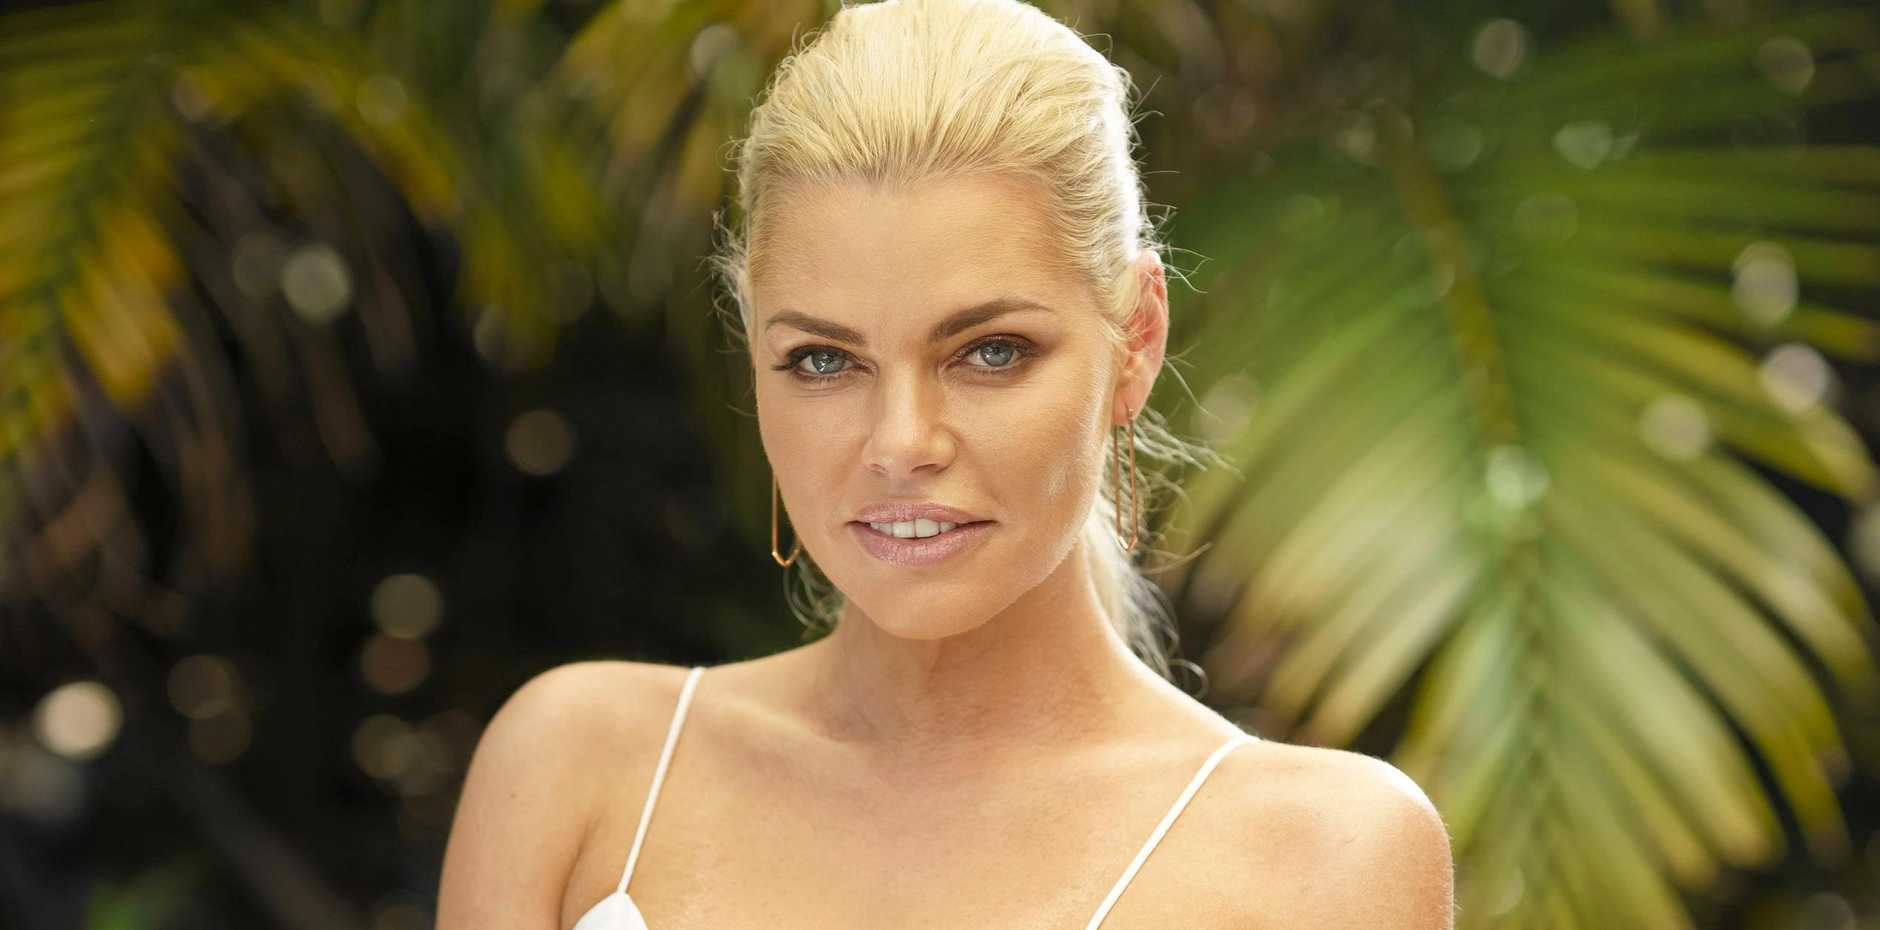 Sophie Monk from Love Island Australia  image - News Corp